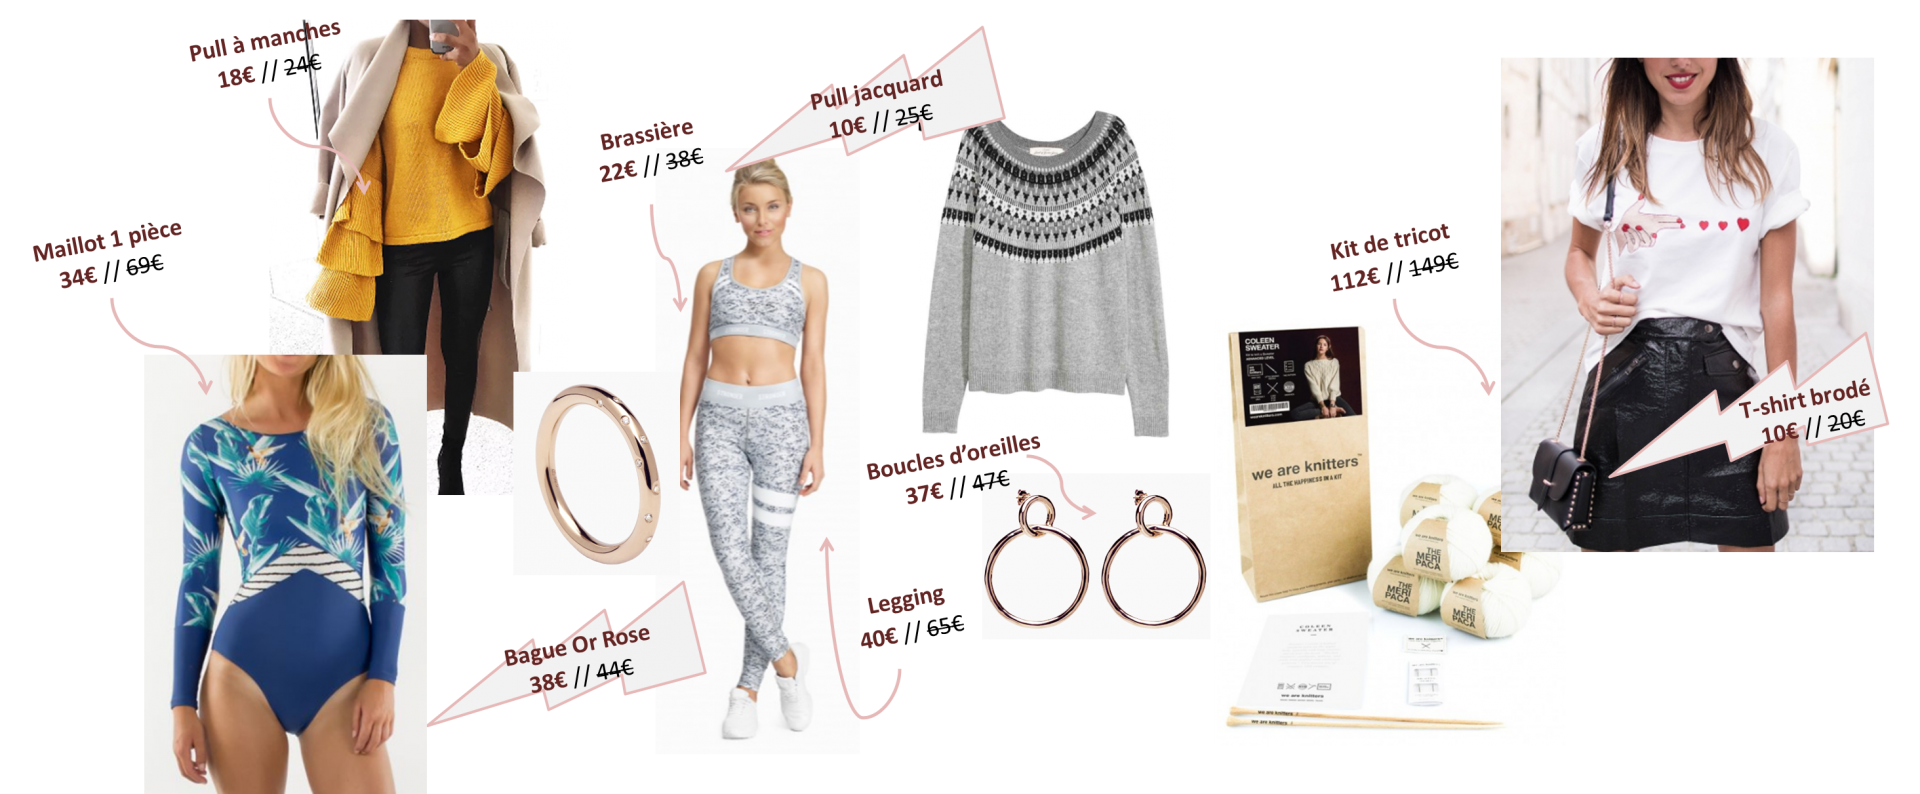 Sharefashion - Cybermonday ma sélection et codes promos